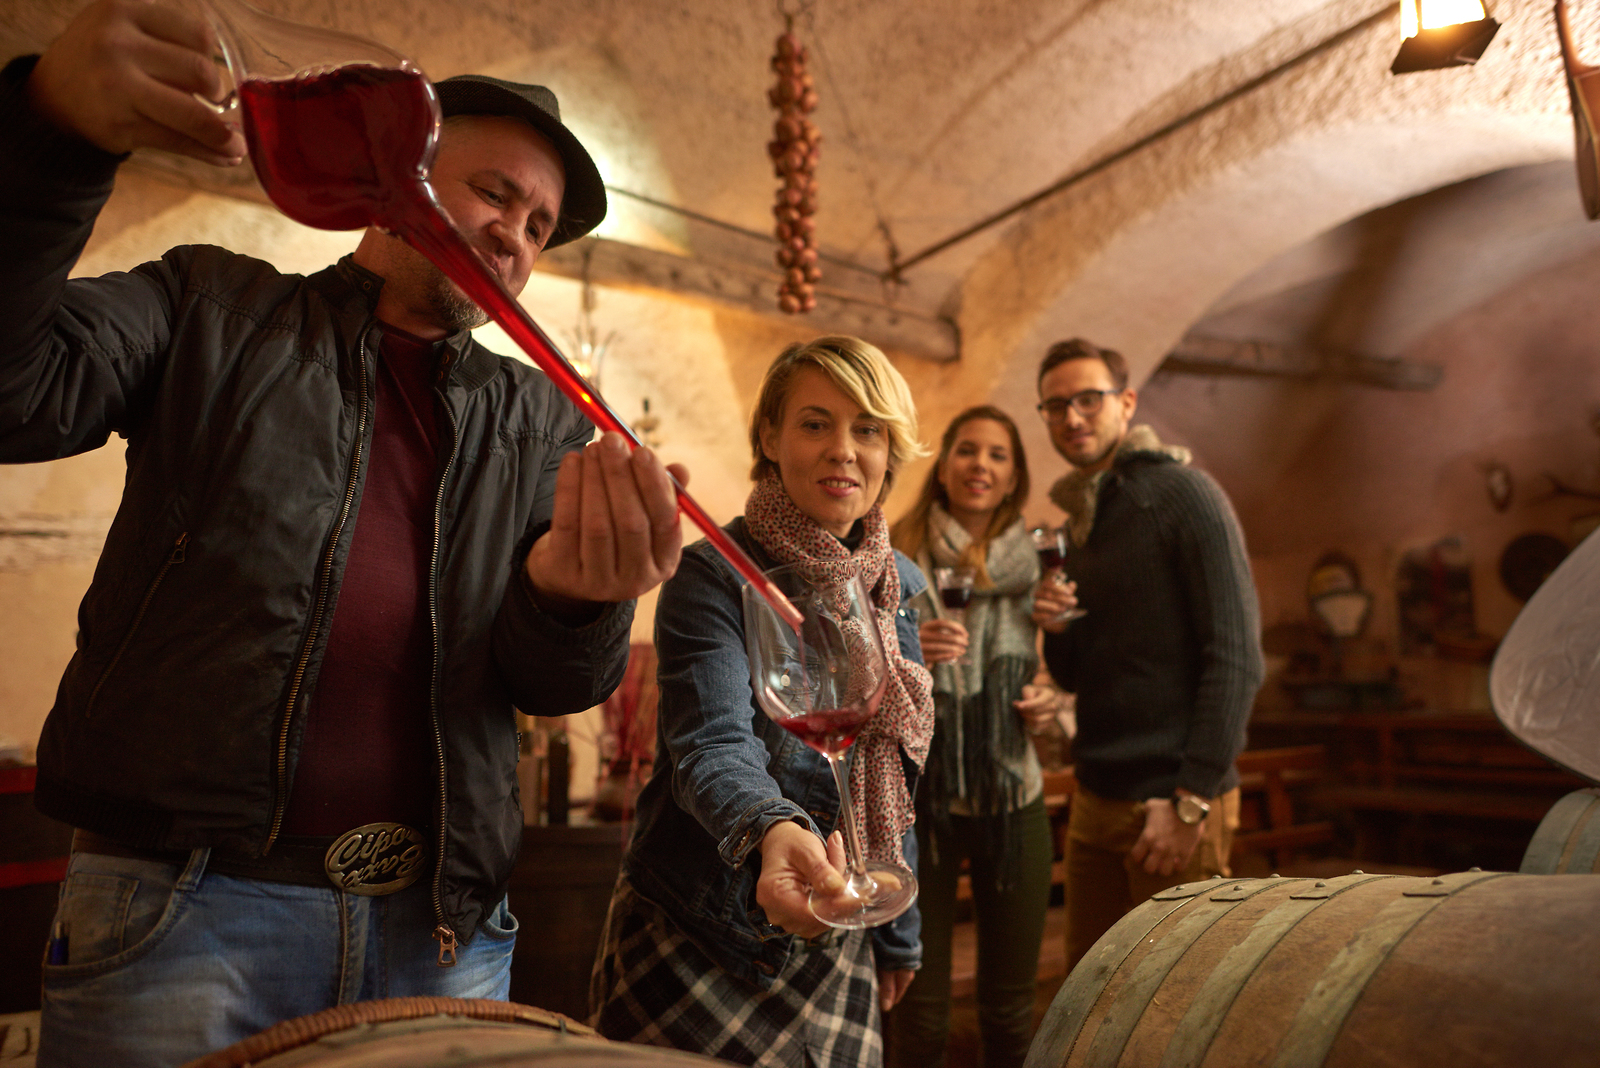 A Slovenian winemaker pours young red wine into a wine taster's glass